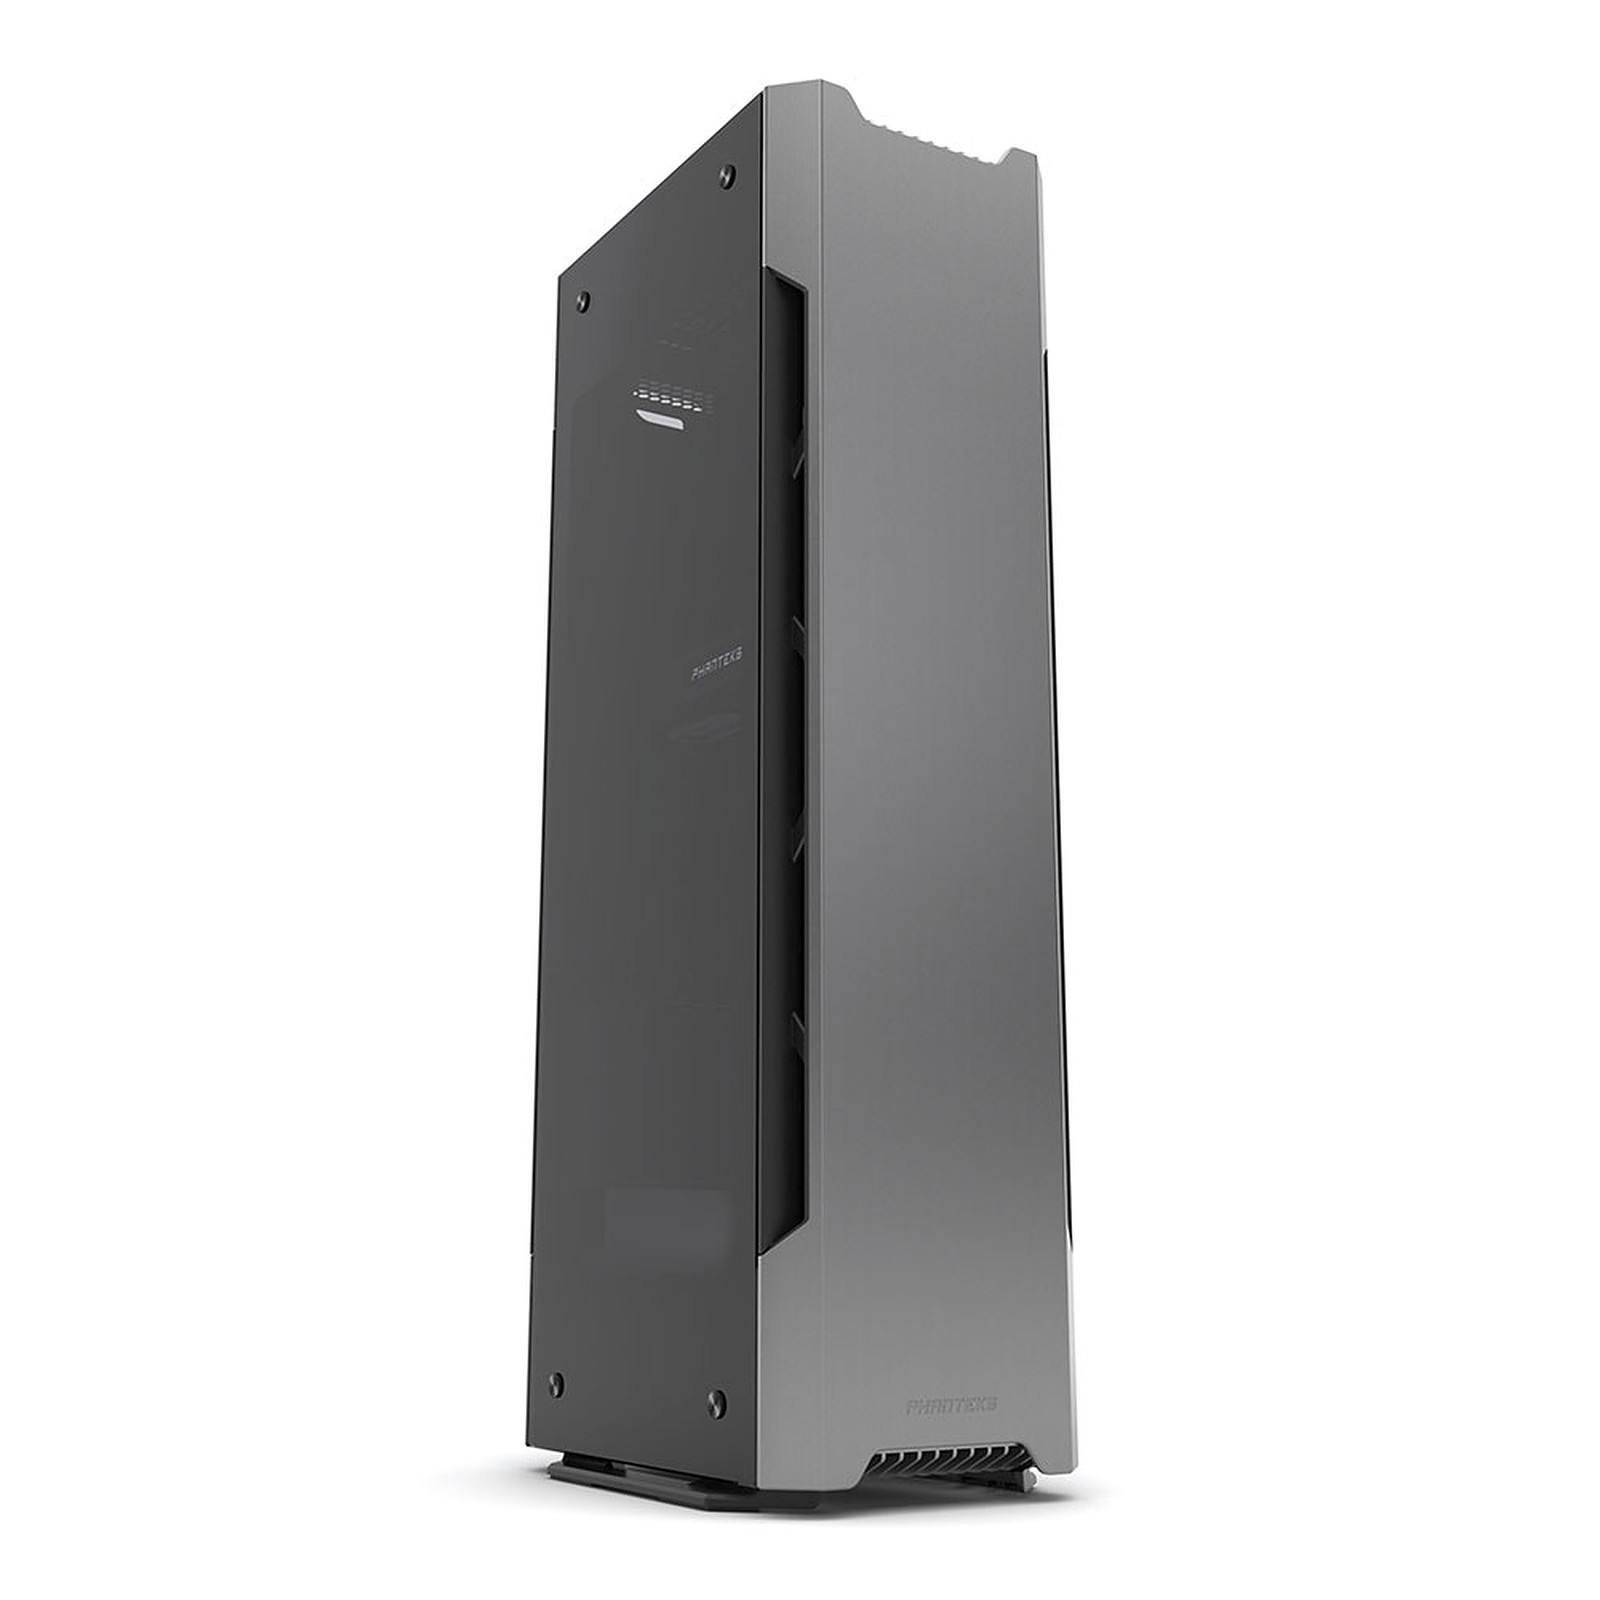 Phanteks Enthoo Evolv Shift X (anthracite)